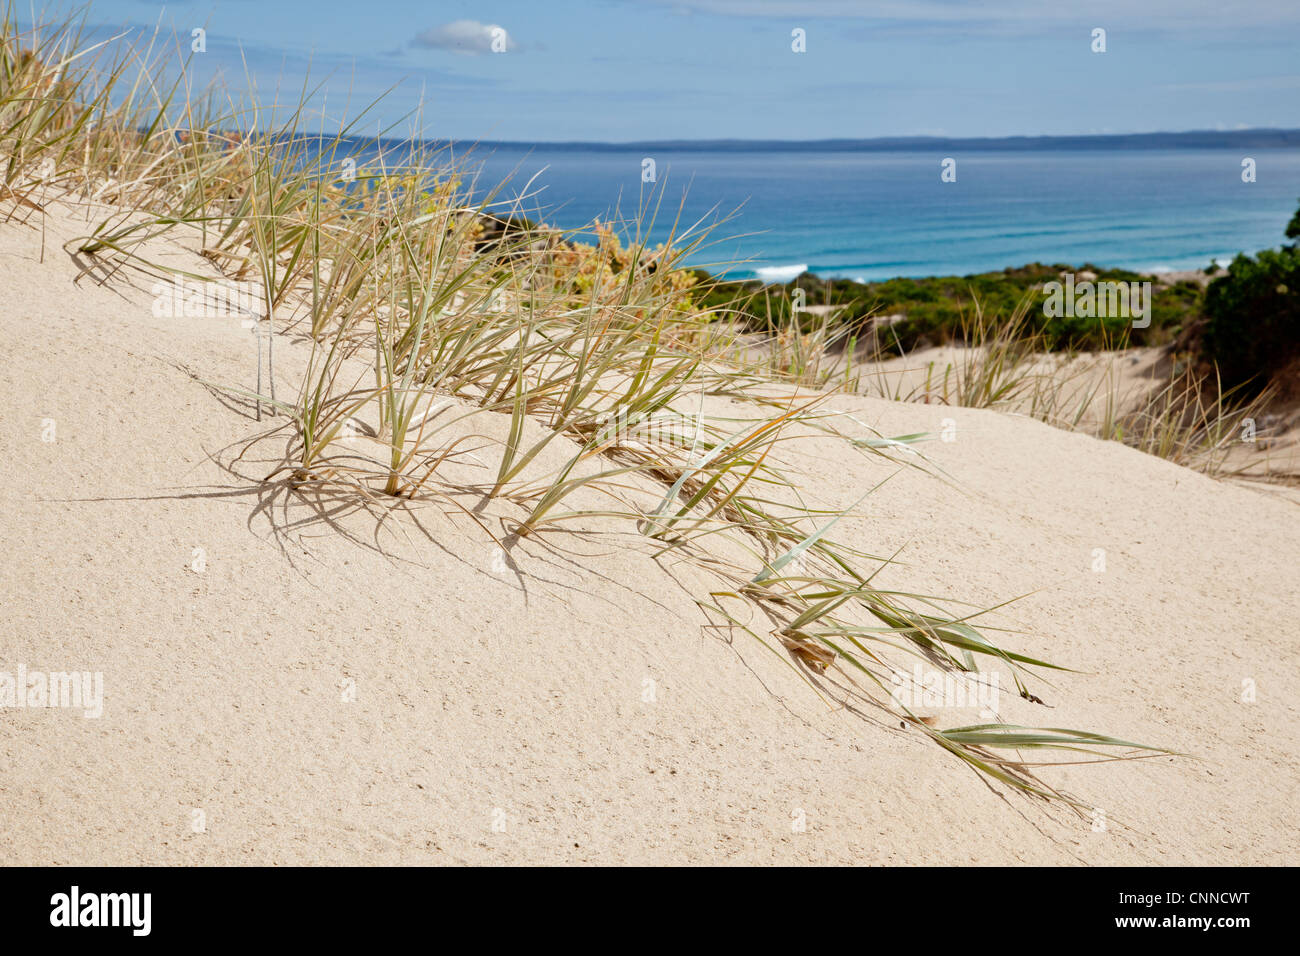 Dune grass Eyre Peninsula South Australia - Stock Image